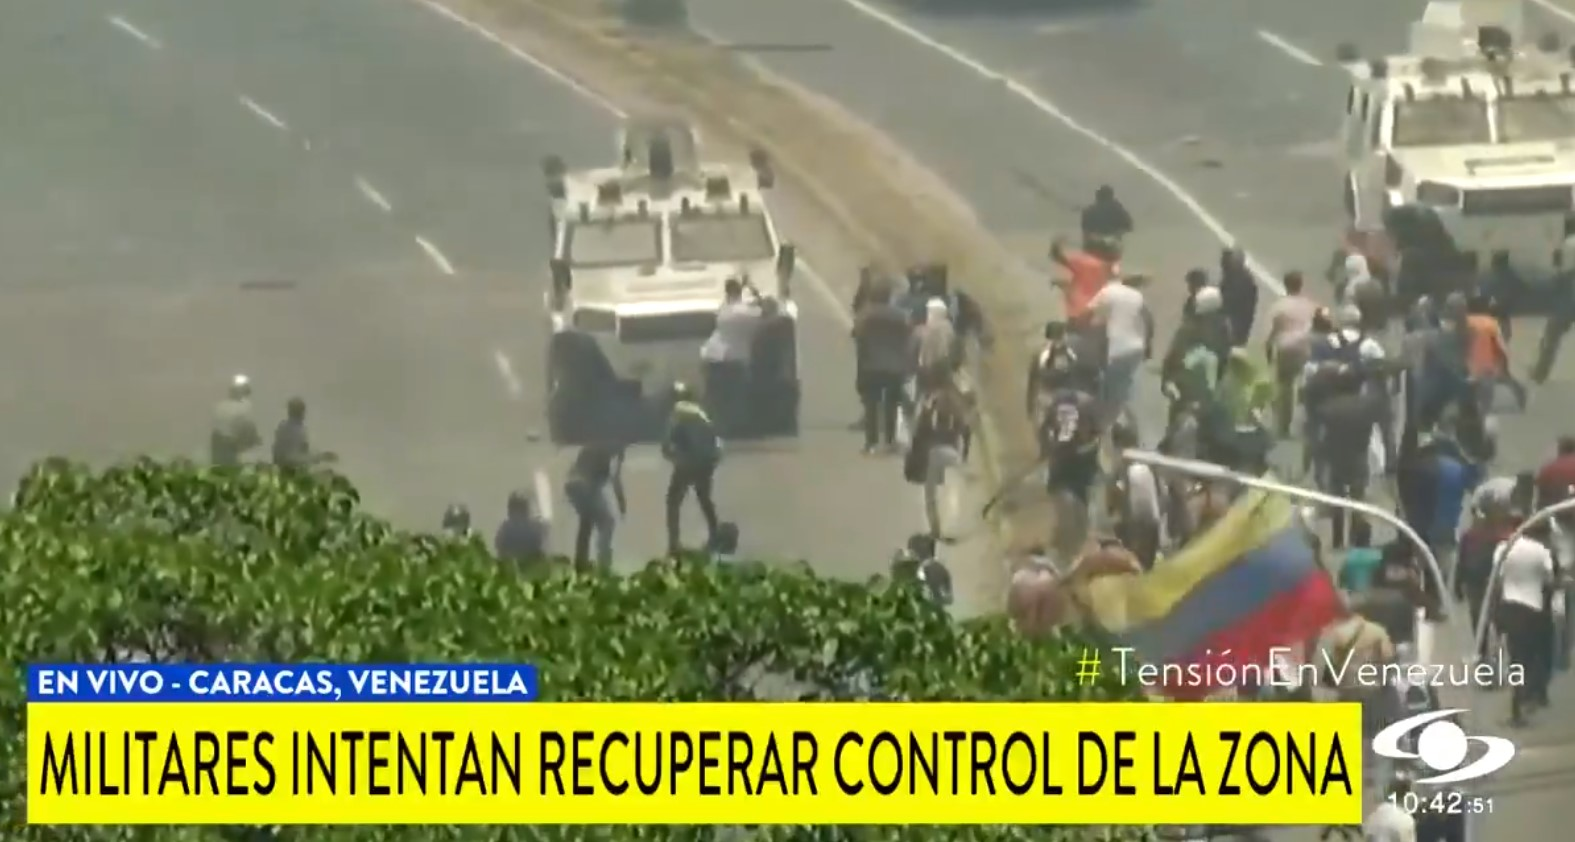 The military began to push the protesters in the street on armored vehicles in Venizuela